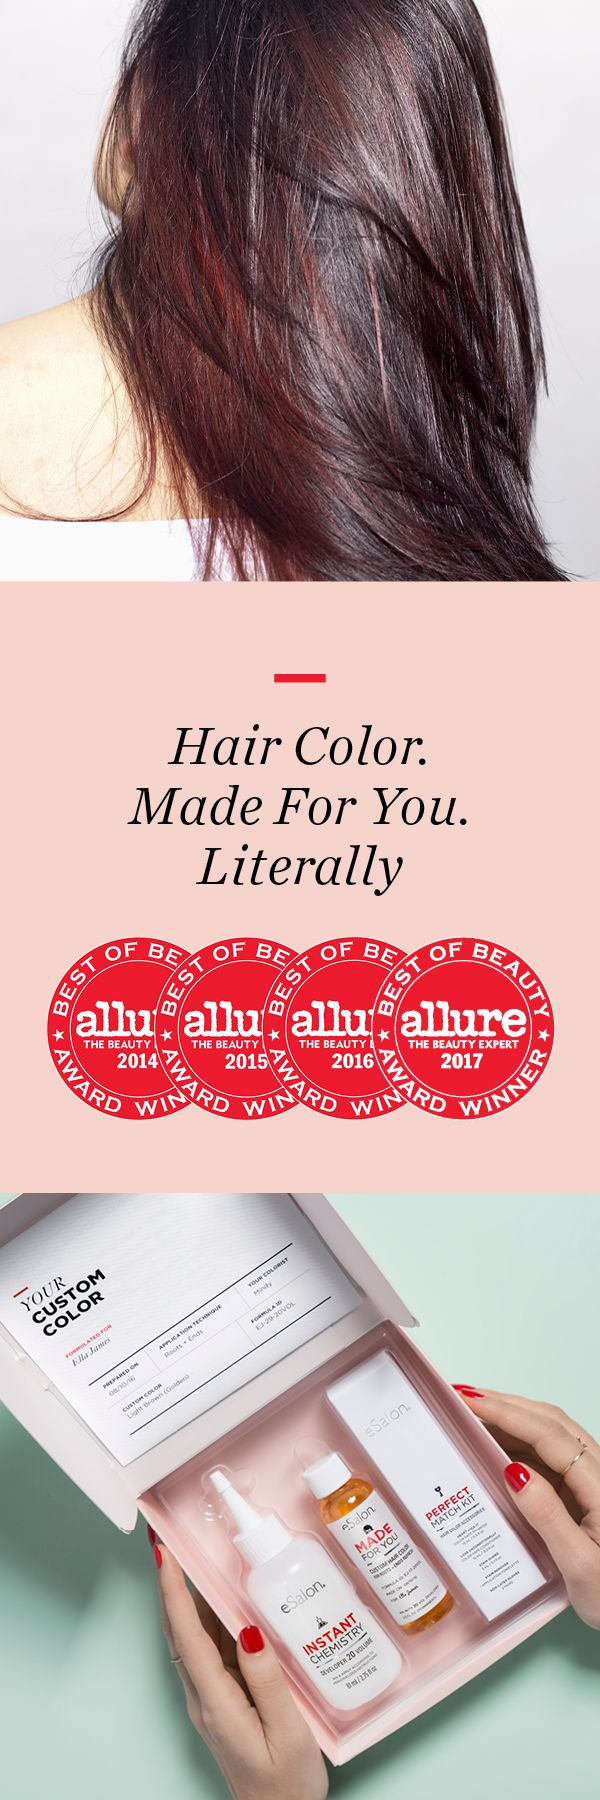 The first and only of its kind, our customized hair color is formulated-to-order for better color and better coverage. See why Allure awarded us Best Home Color, four years in a row.